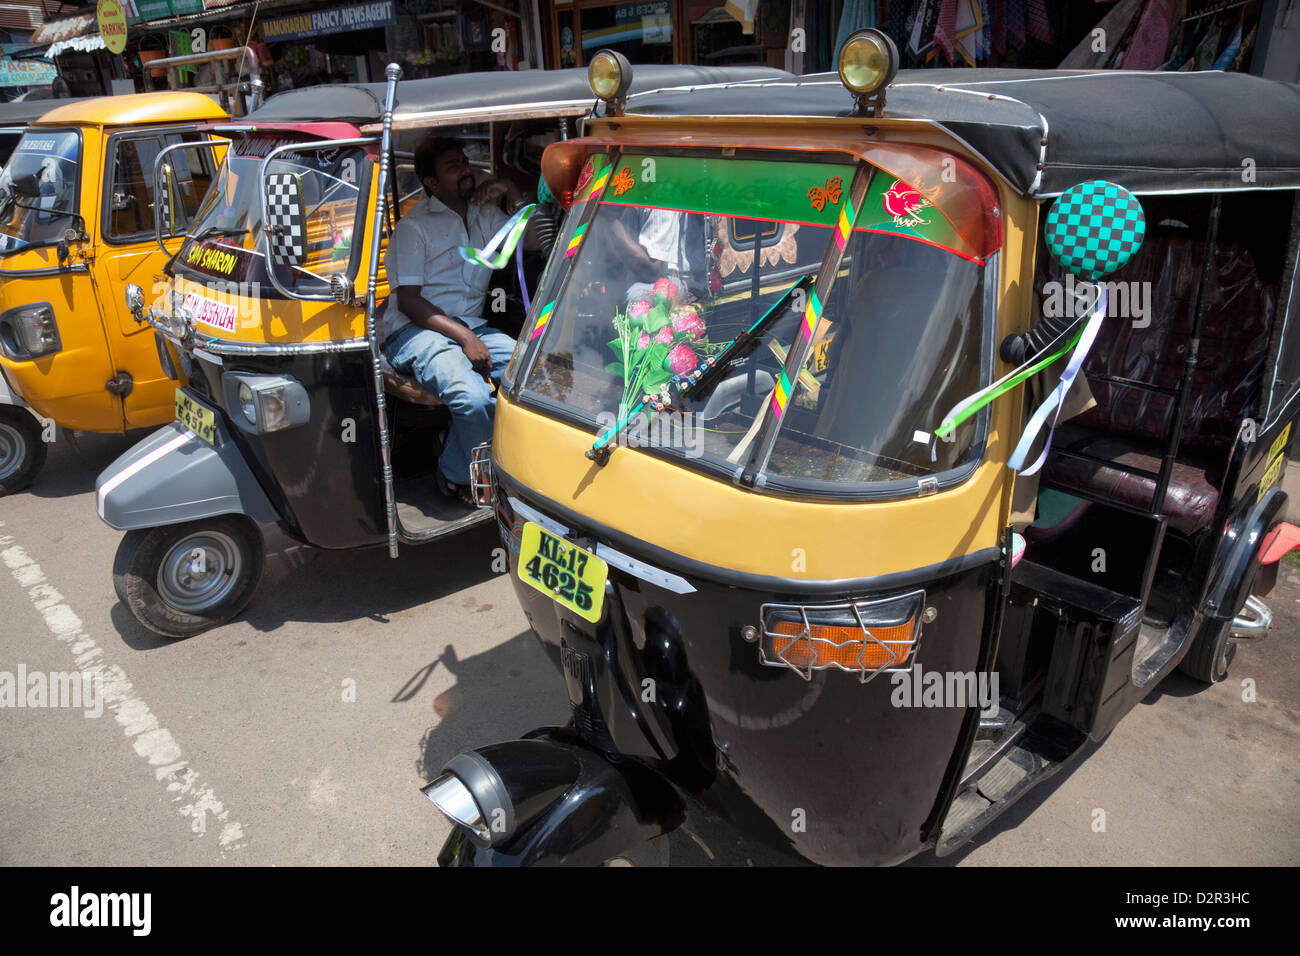 Auto rickshaws for hire in the street in Munnar, Kerala, India, Asia - Stock Image